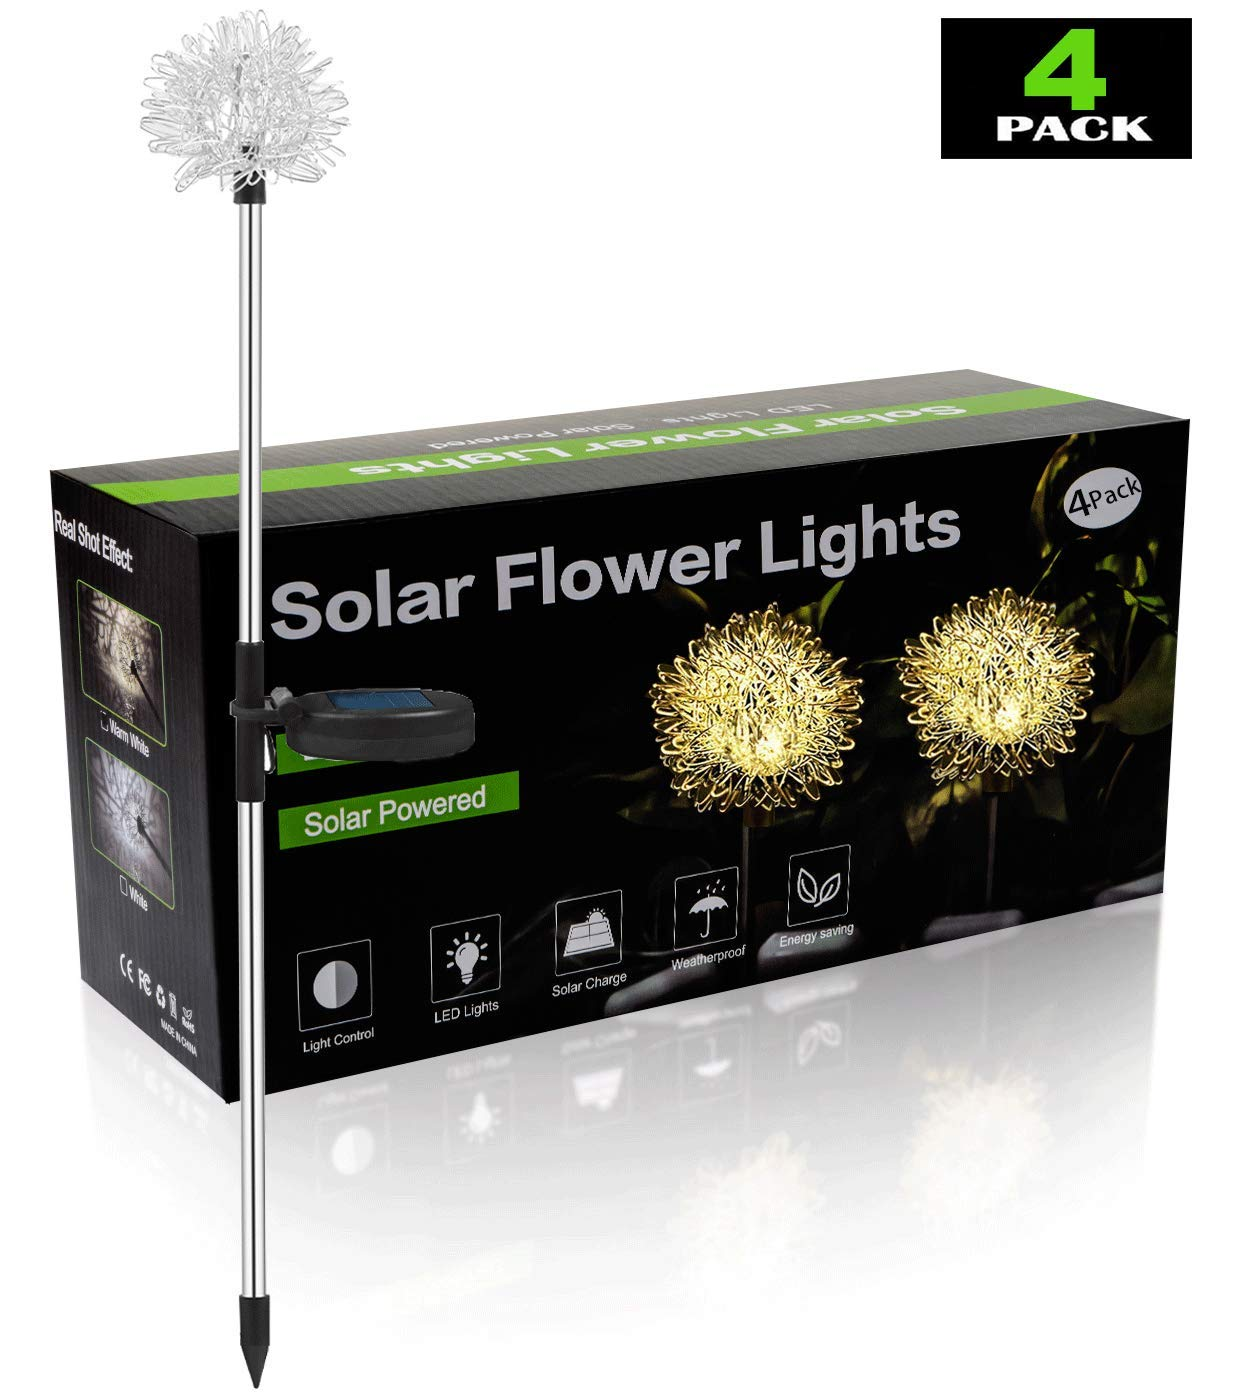 Decorative Garden Solar Lights Outdoor, Warm Colored Solar Powered Dandelion Flower Lights, LED Landscape Lighting with Stakes for Garden Pathway, Walkway, Driveway, Landscape, or Patio - Set of 4